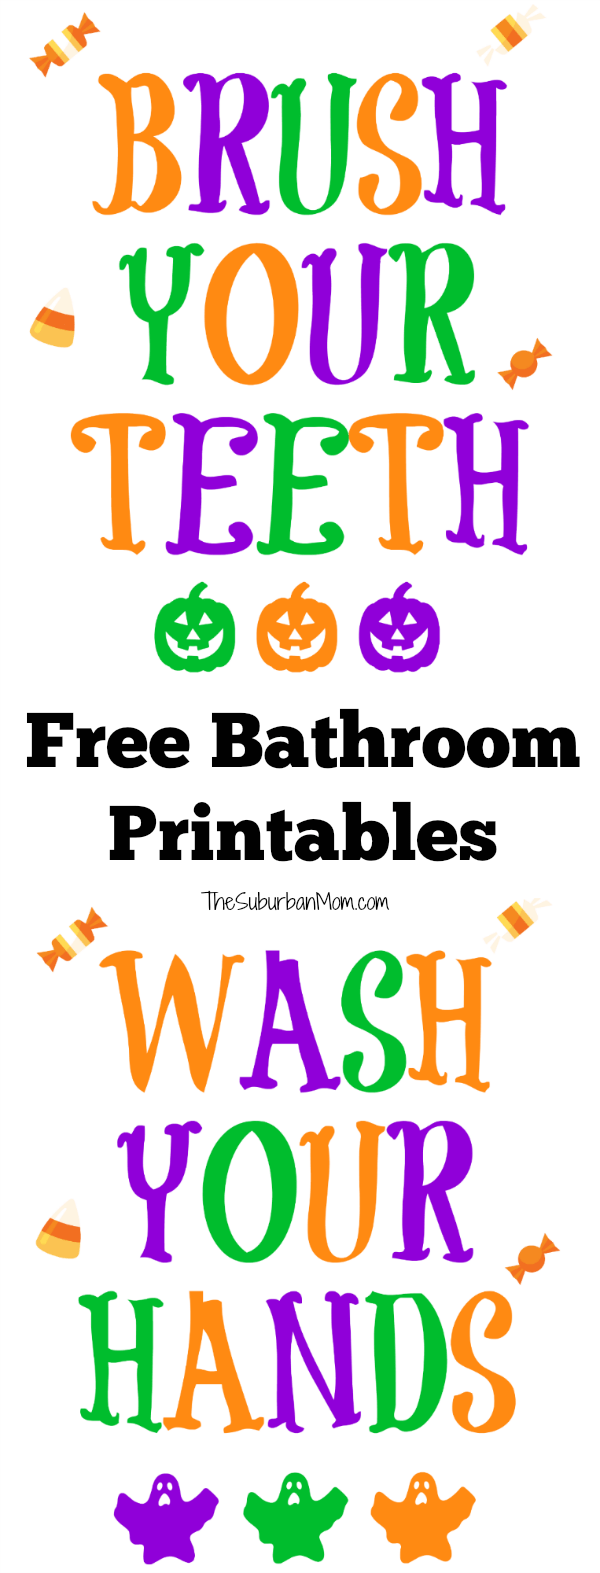 photograph regarding Halloween Signs Printable identified as 31 Totally free Halloween Printables - TheSuburbanMom